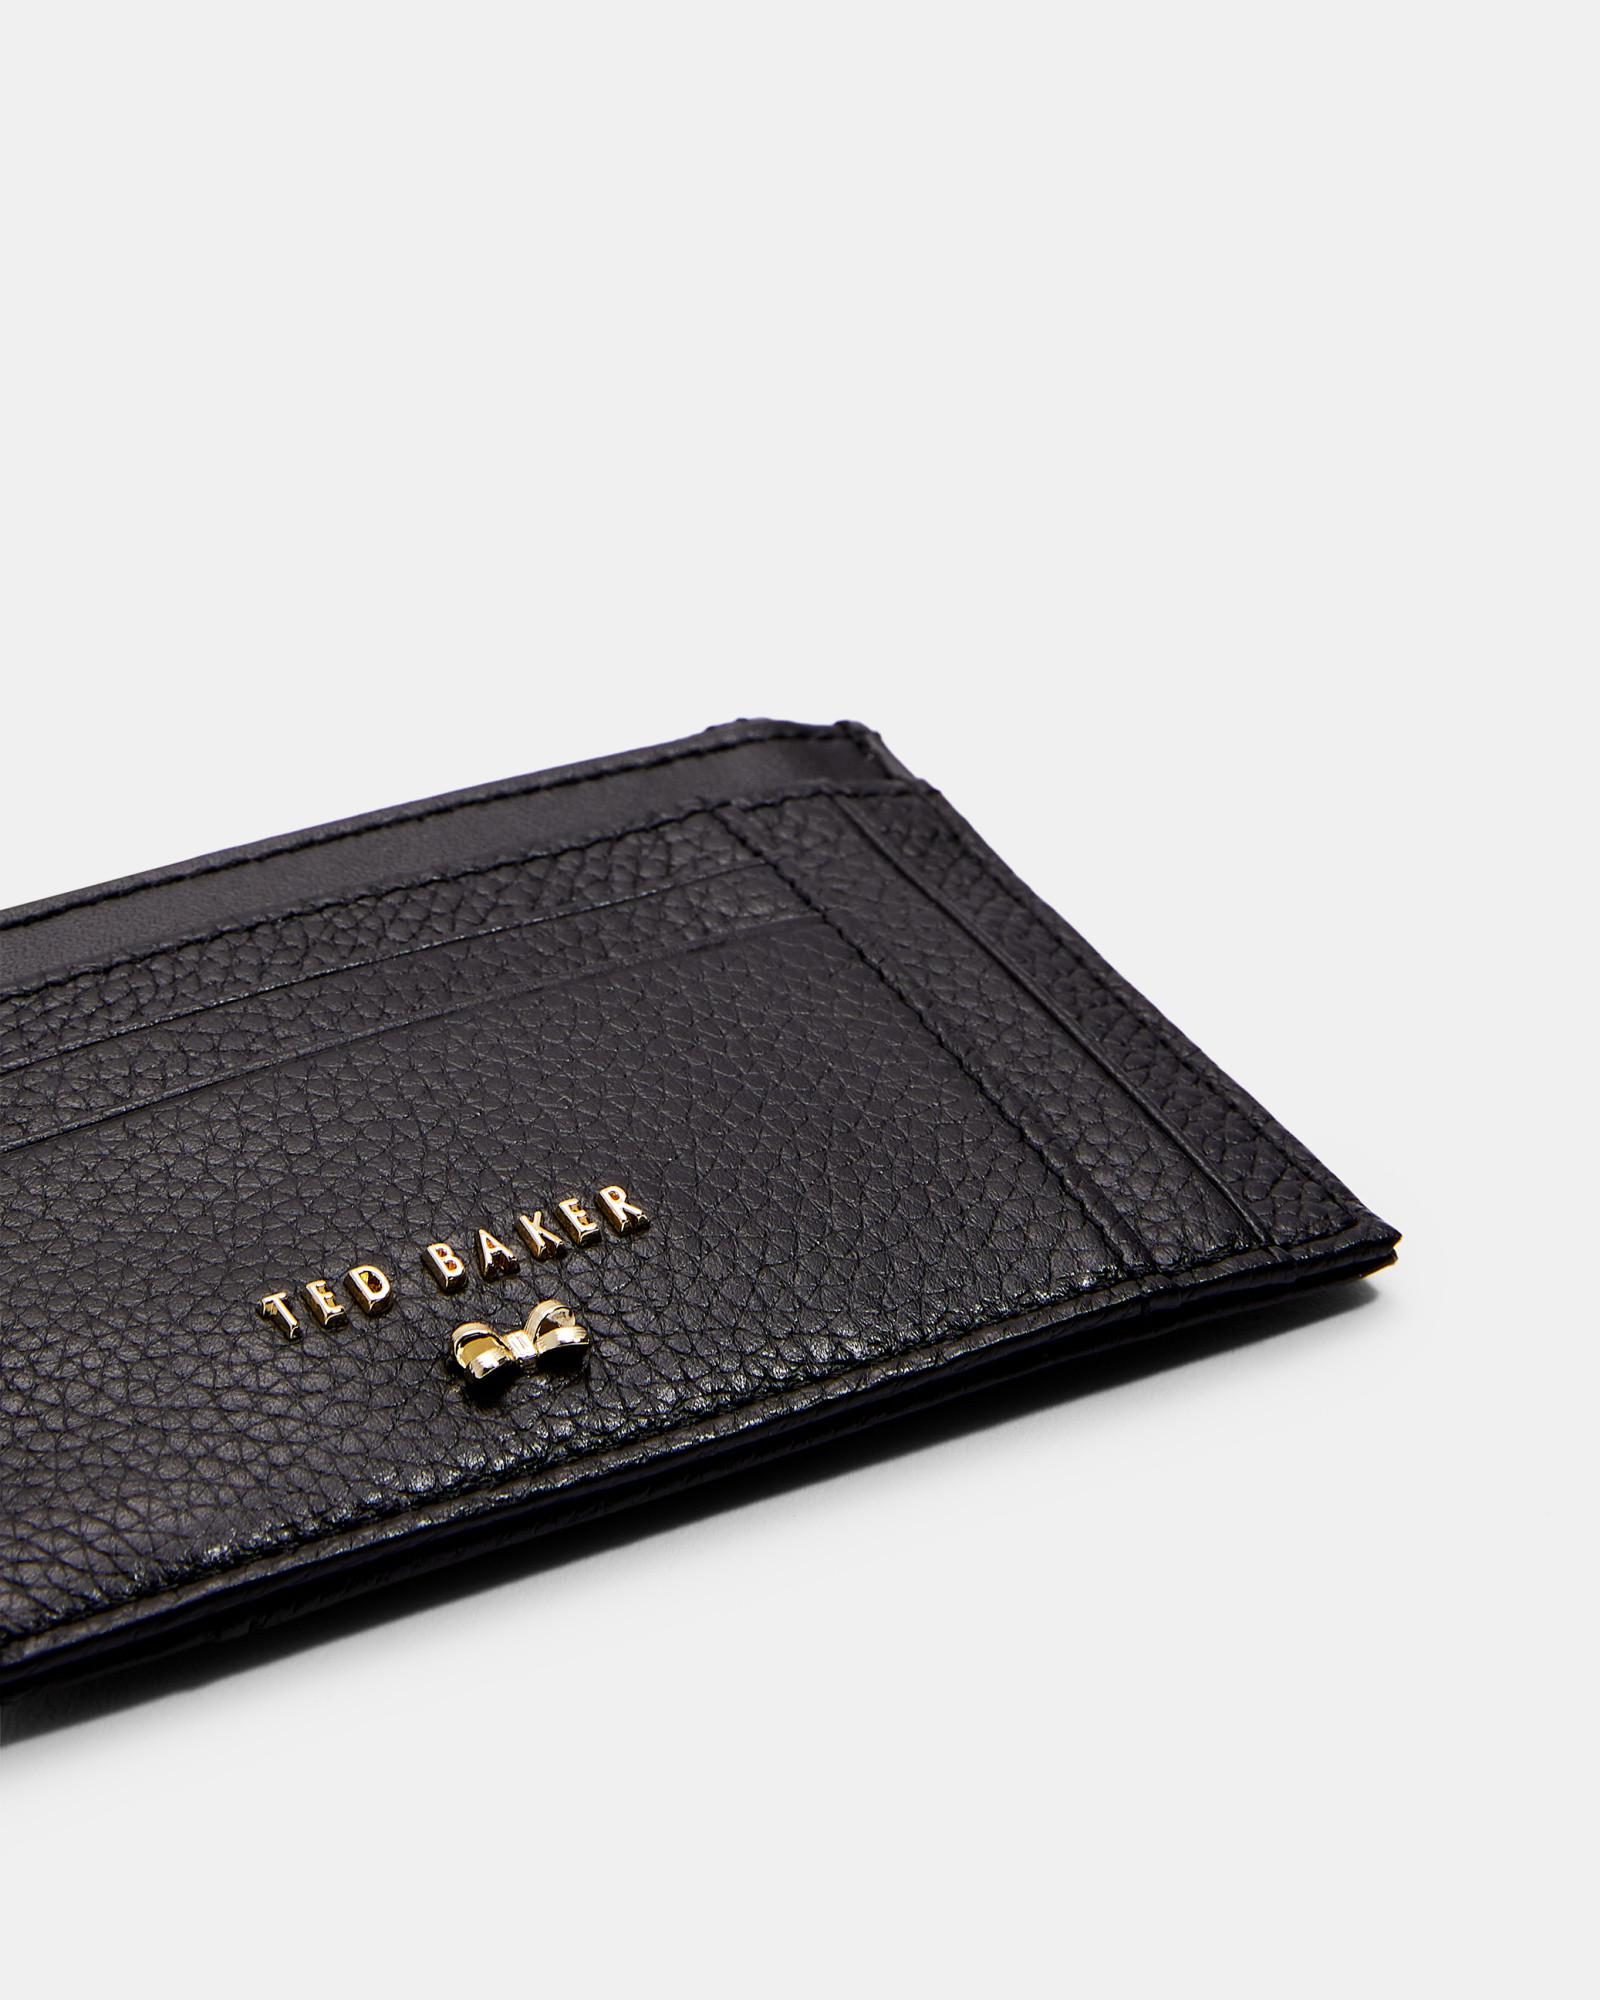 69f60b467424 Lyst - Ted Baker Double Sided Zipped Leather Card Holder in Black